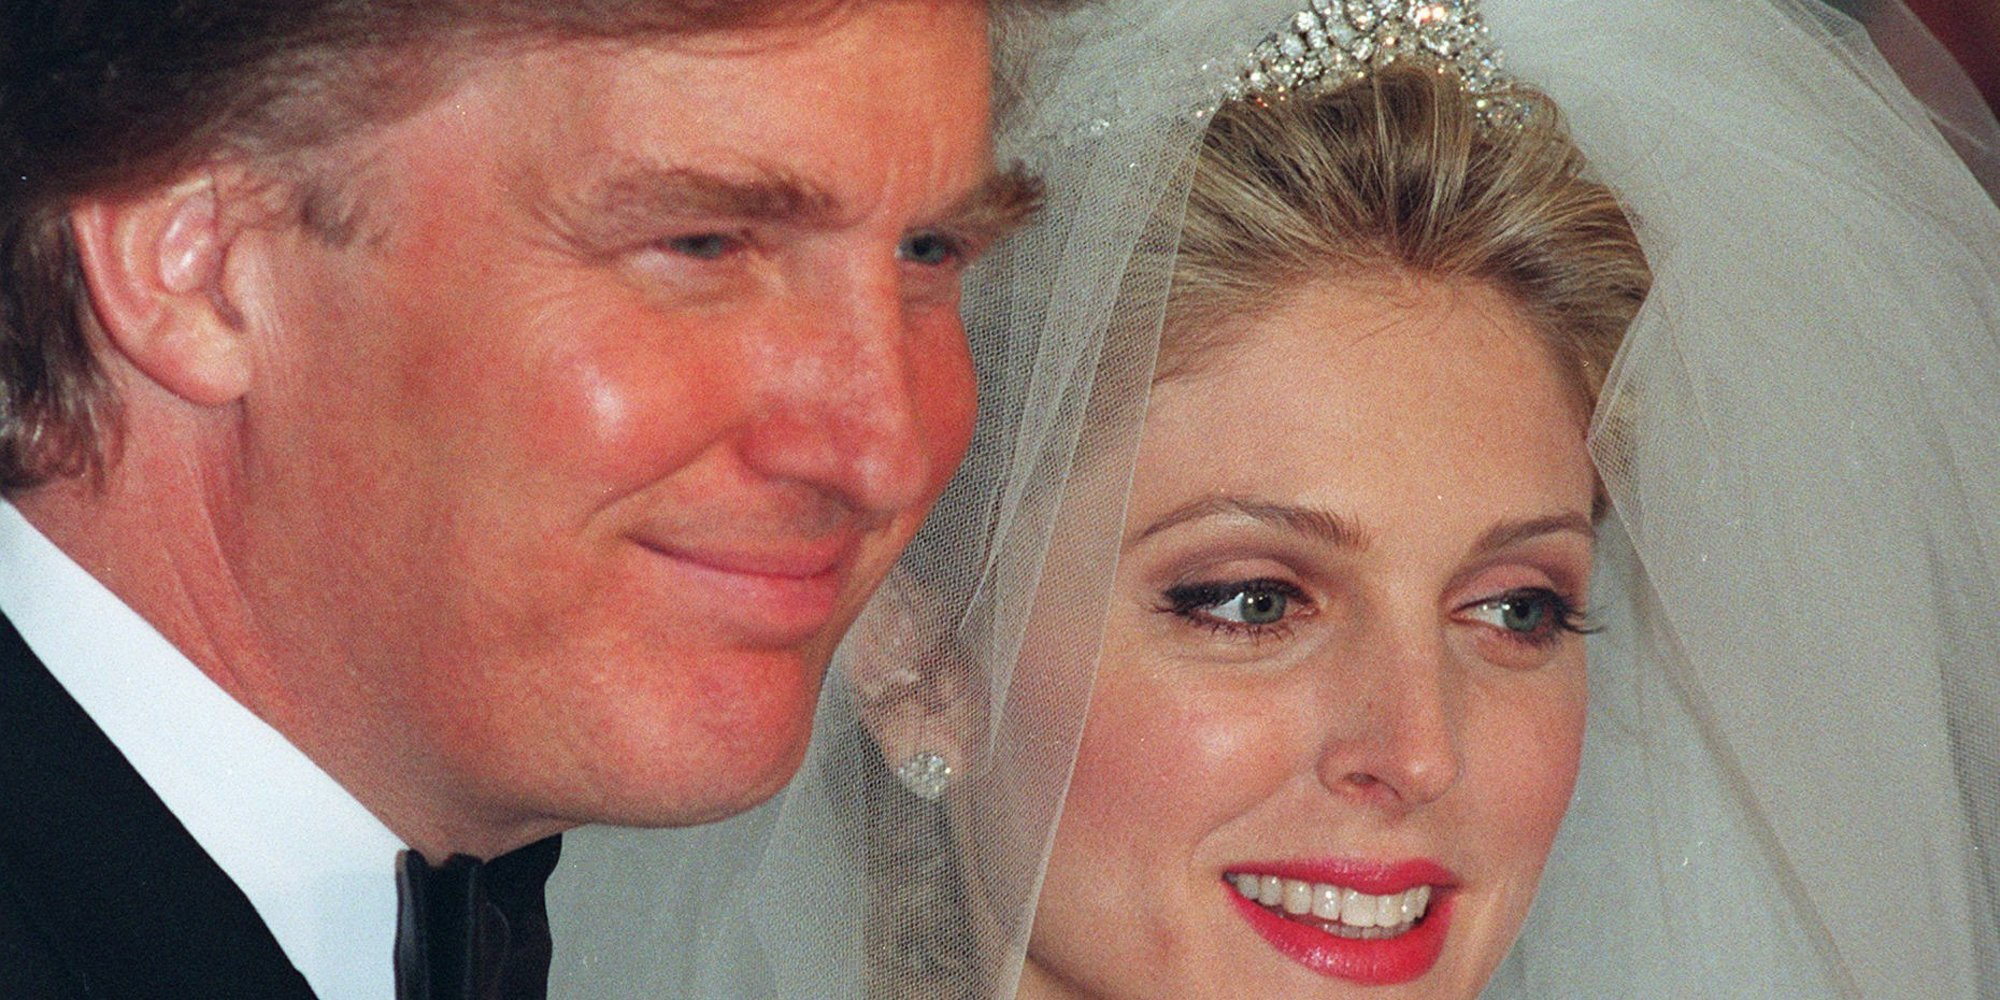 FILE--Donald Trump and Marla Maples pose for photographers following their wedding ceremony in New York, as seen in this December 1993 file photo. Trump and Maples, his wife of three years, are on the verge of breaking up, the New York Post reported Friday, May 2, 1997. ``Donald wants out. He's looking for his freedom,'' the newspaper said, quoting unidentified sources. (AP Photo/Kathy Willens, File)